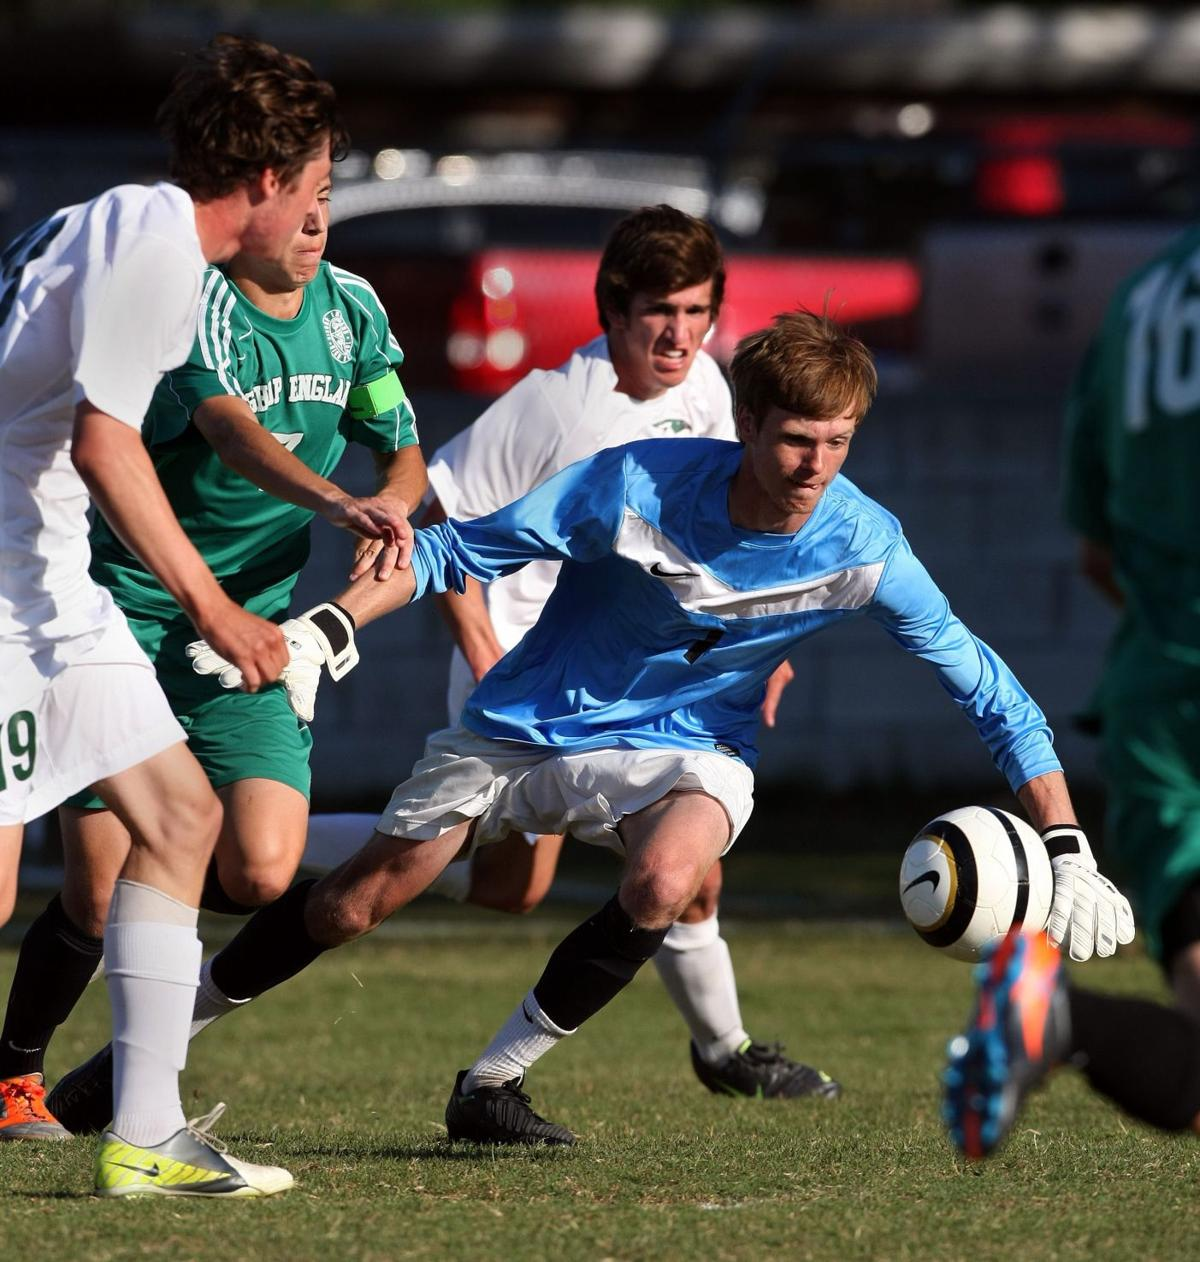 Lowcountry players dot all-state soccer teams